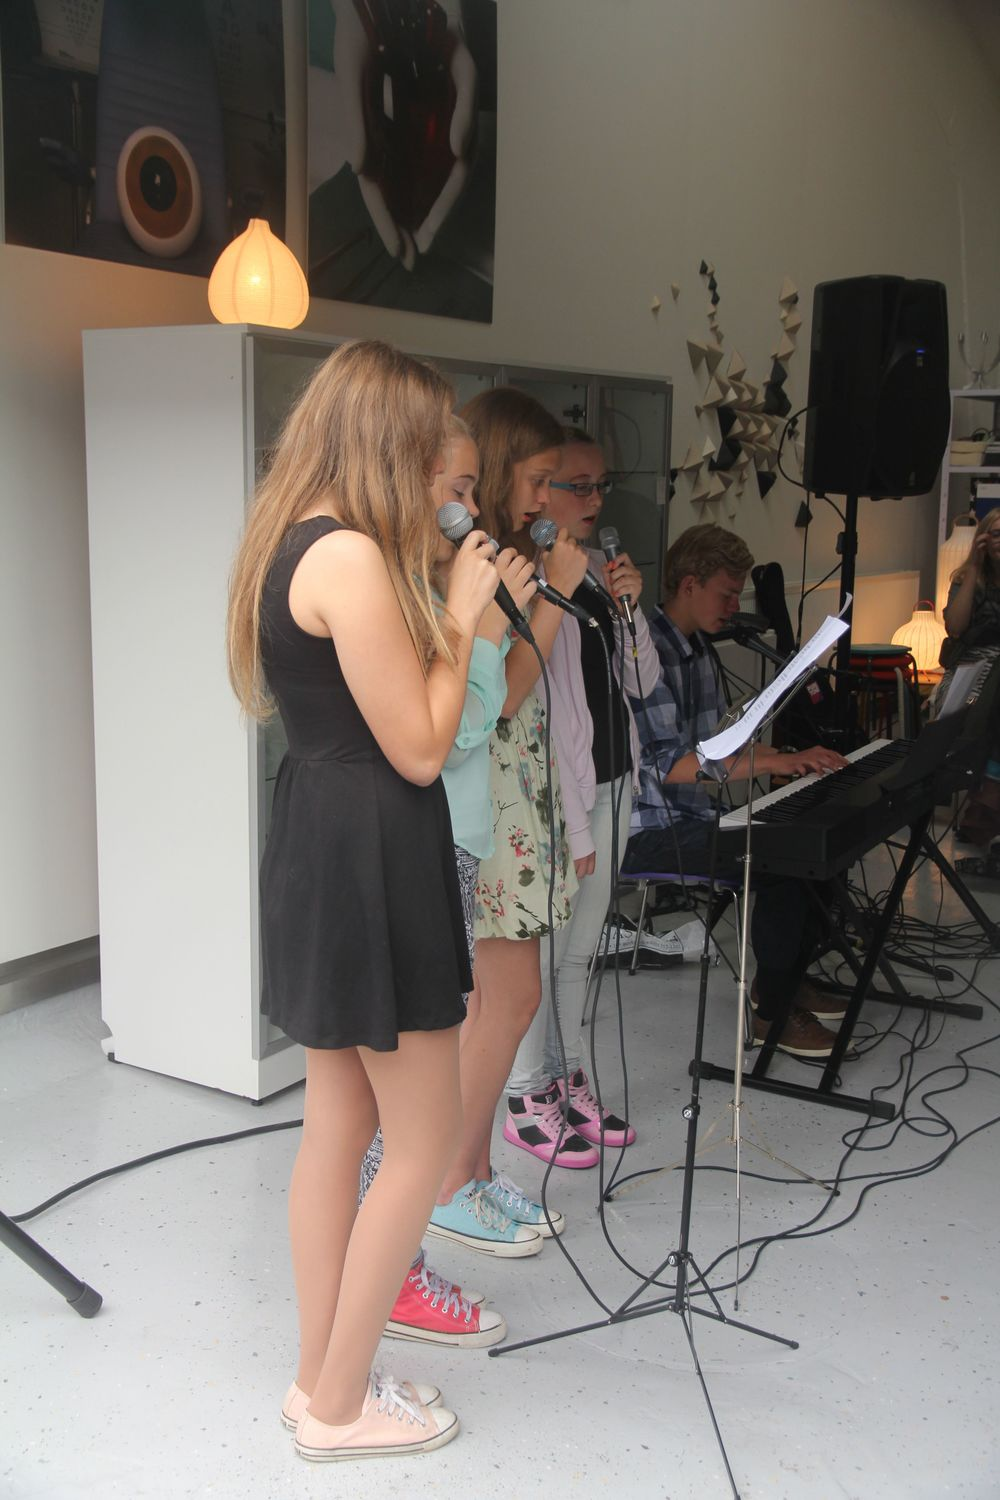 Small performace by High School girls at Menningarnótt 2013